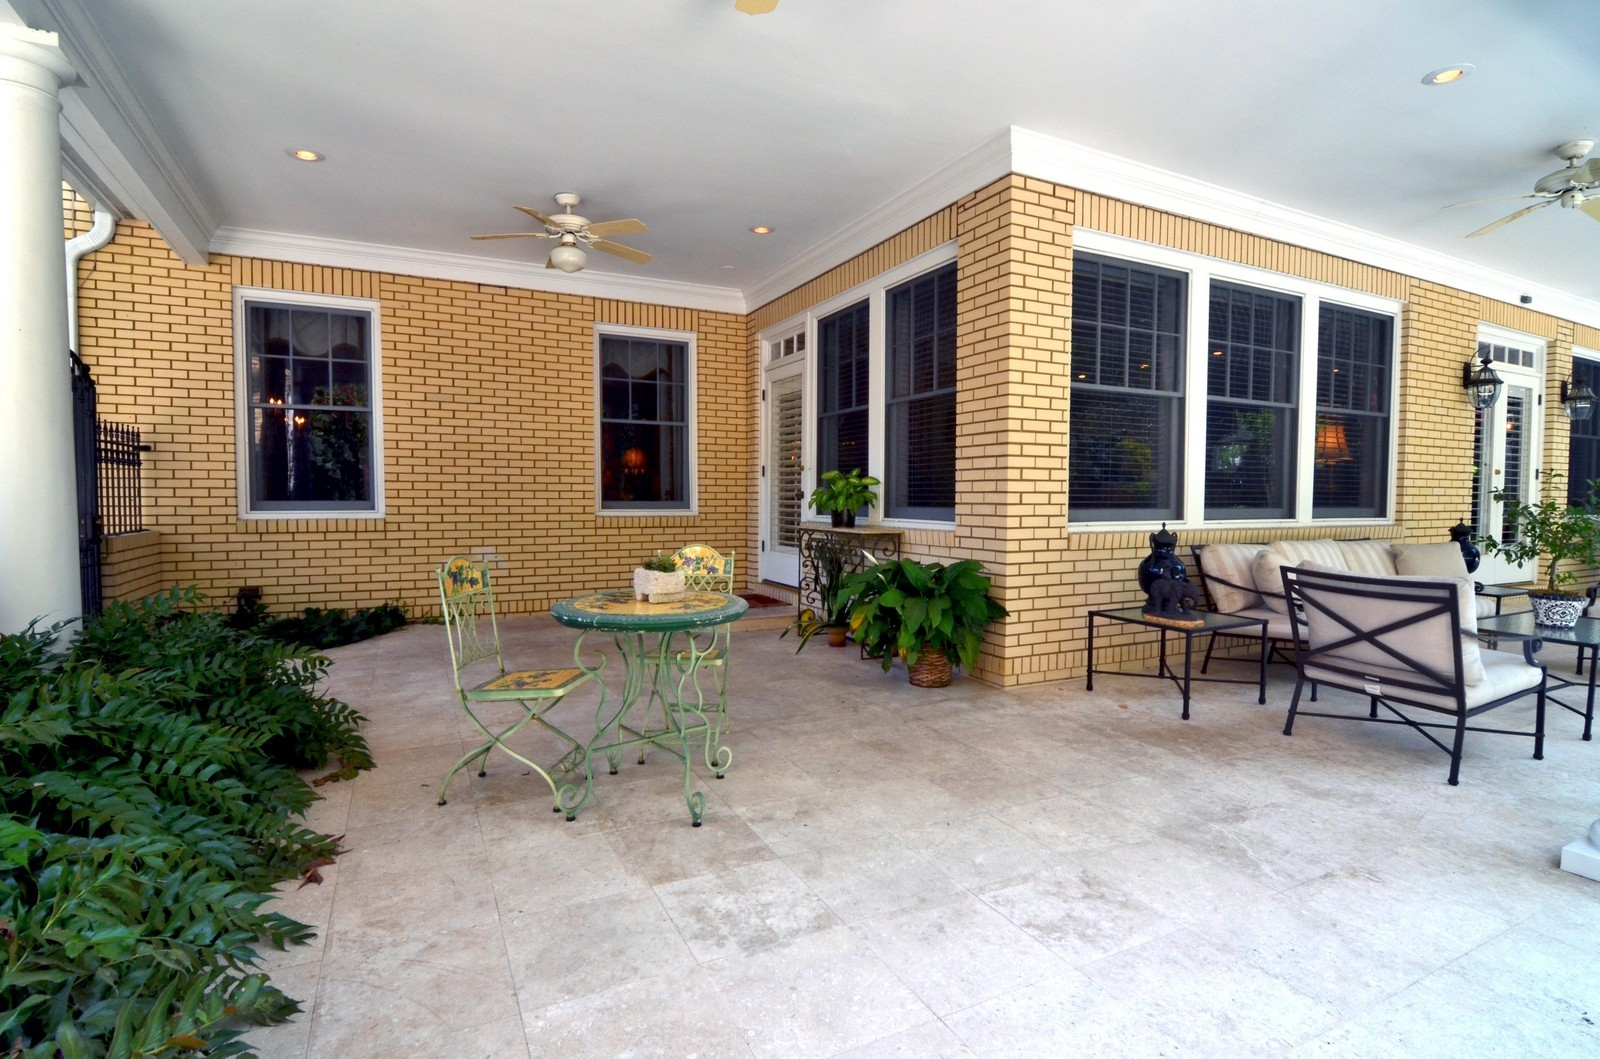 Real Estate Photography - 2223 S. Bendelow Trail, Tampa, FL, 33629 - Patio